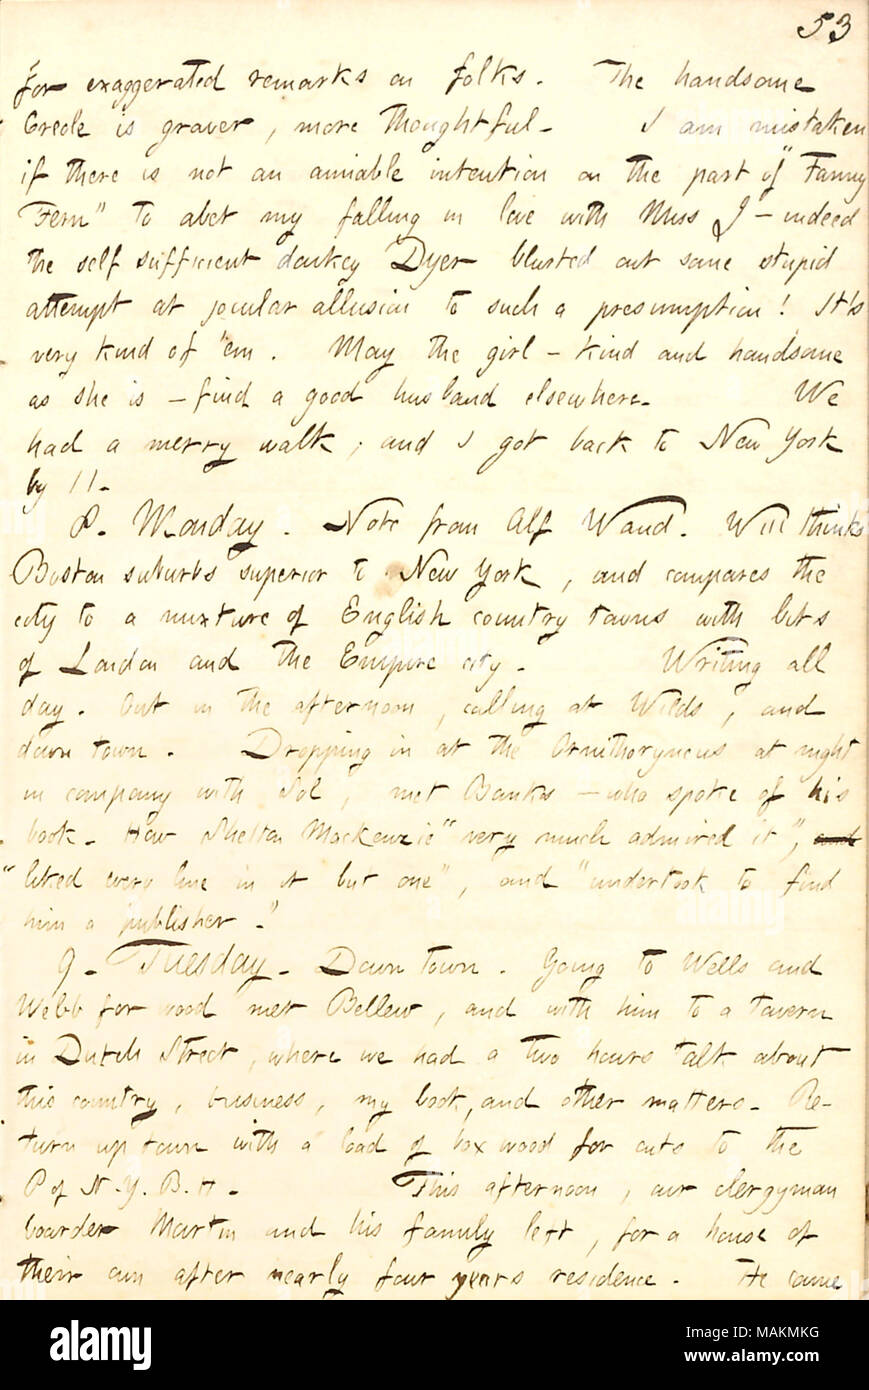 Regarding his suspicions that Fanny Fern is trying to get him to fall in love with Louisa Jacobs.  Transcription: for exaggerated remarks on folks. The handsome Creole [Louisa Jacobs] is graver, more thoughtful. I am mistaken if there is not an amiable intention on the part of 'Fanny Fern' to abet my falling in love with Miss J  ? indeed the self sufficient donkey [Oliver] Dyer blurted out some stupid attempt at jocular allusion to such a presumption! It ?s very kind of 'em. May the girl  ? kind and handsome as she is  ? find a good husband elsewhere. We had a merry walk; and I got back to New - Stock Image